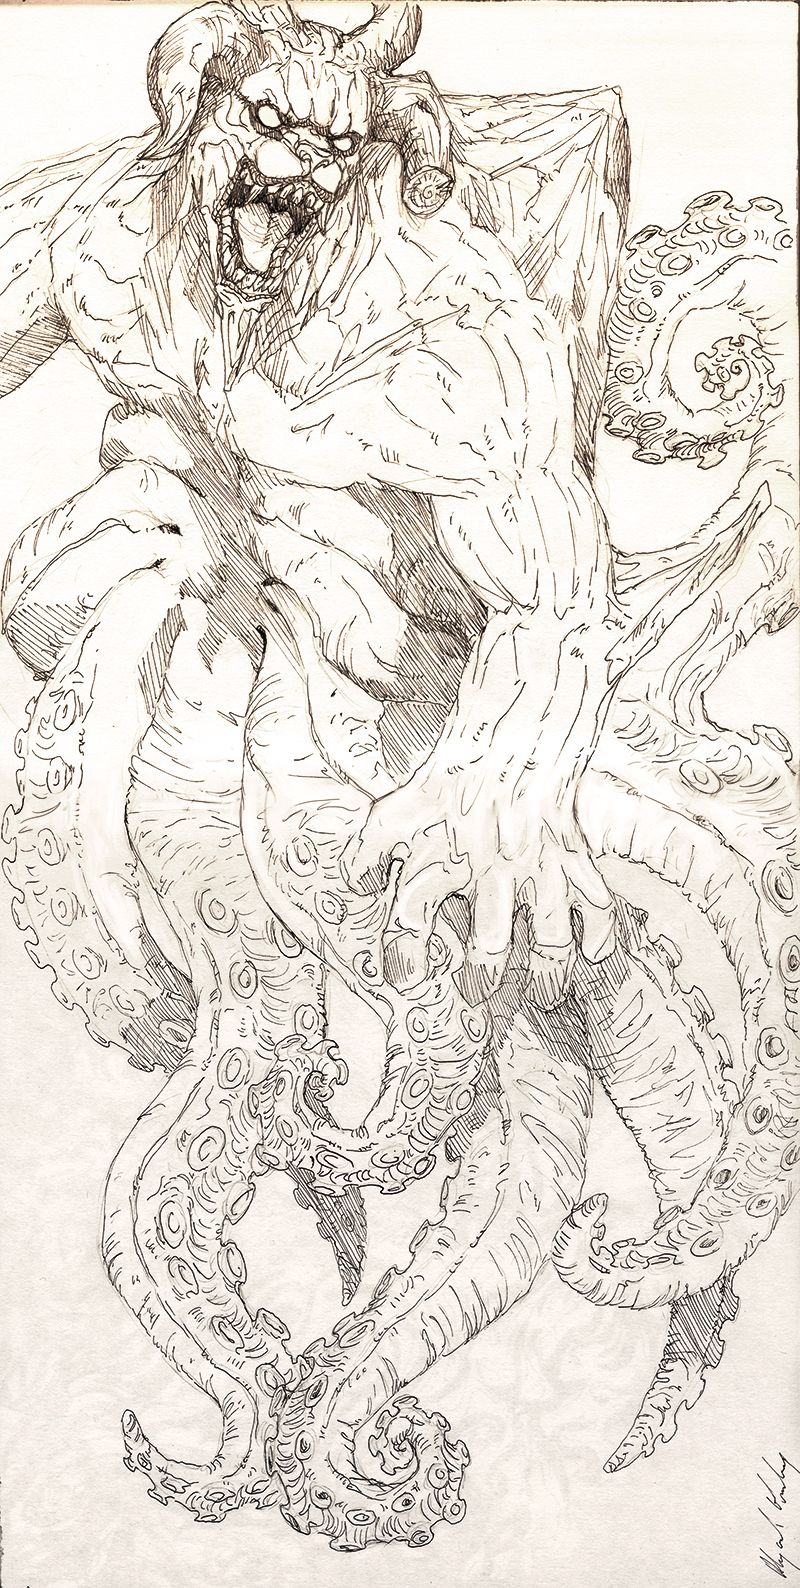 Must see Wallpaper Naruto Sketch - f3a0e778bd5f6036887c31891efc54ed  Pictures.jpg